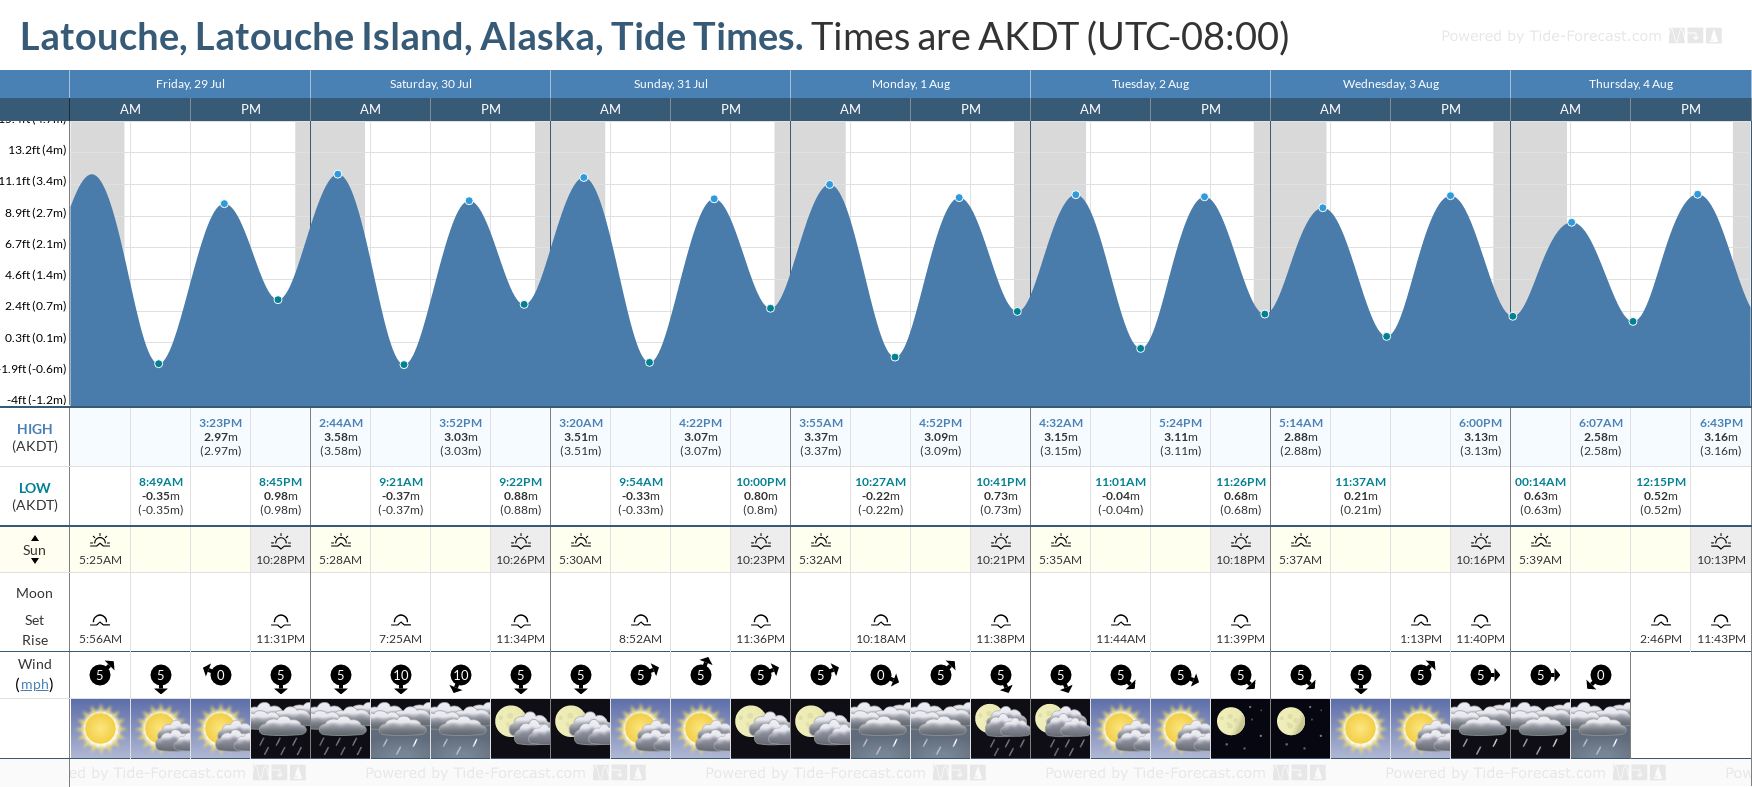 Latouche, Latouche Island, Alaska Tide Chart including high and low tide tide times for the next 7 days